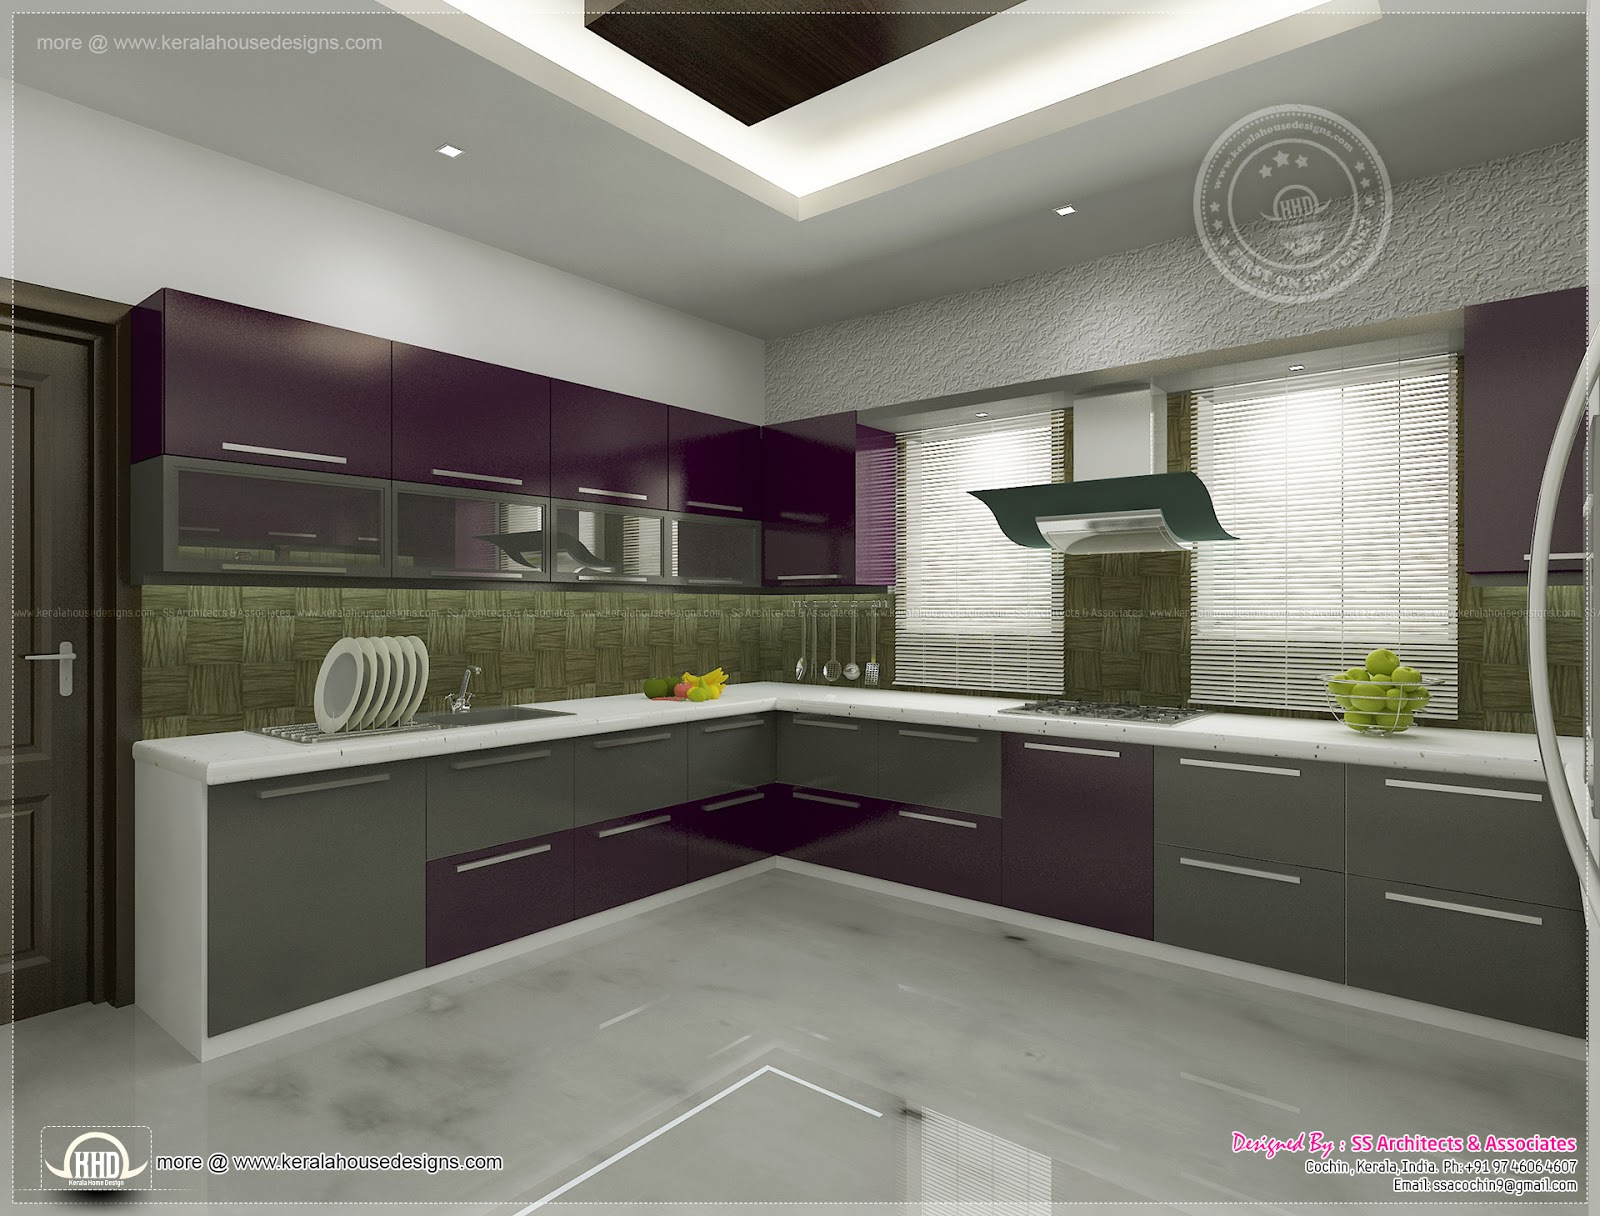 Kitchen interior views by ss architects cochin kerala for Inside home design pictures